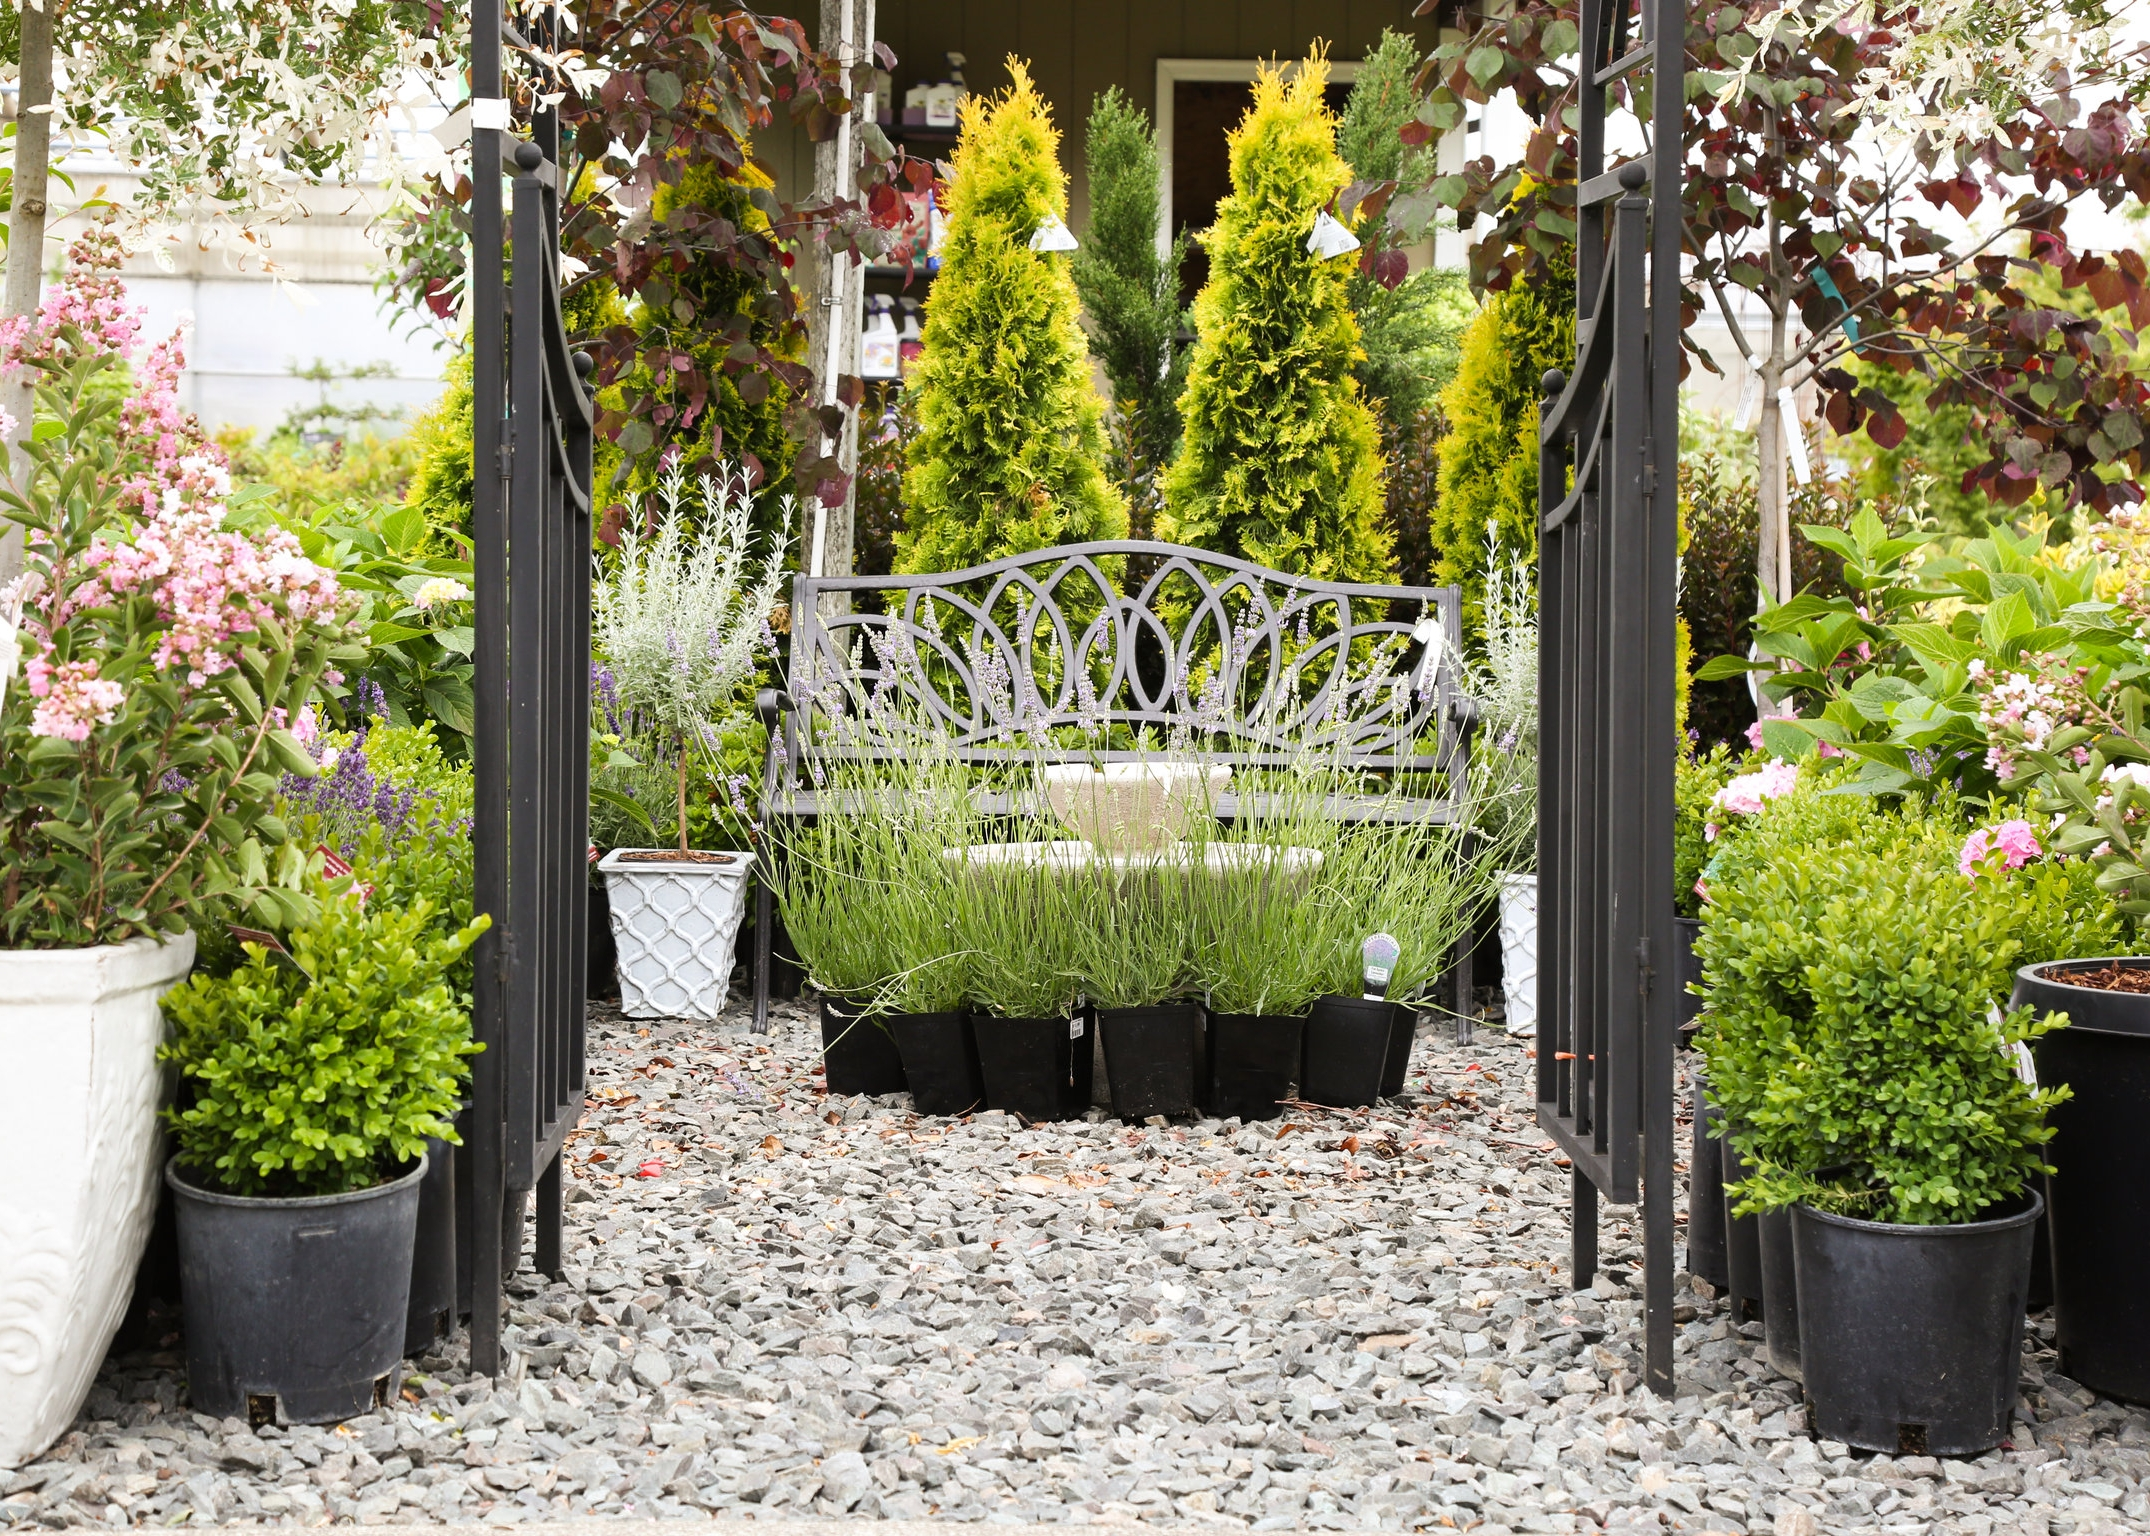 Trees and Shrubs - We carry a wide variety of trees and shrubs including hydrangeas, Japanese maples, fruit trees, vines and more.